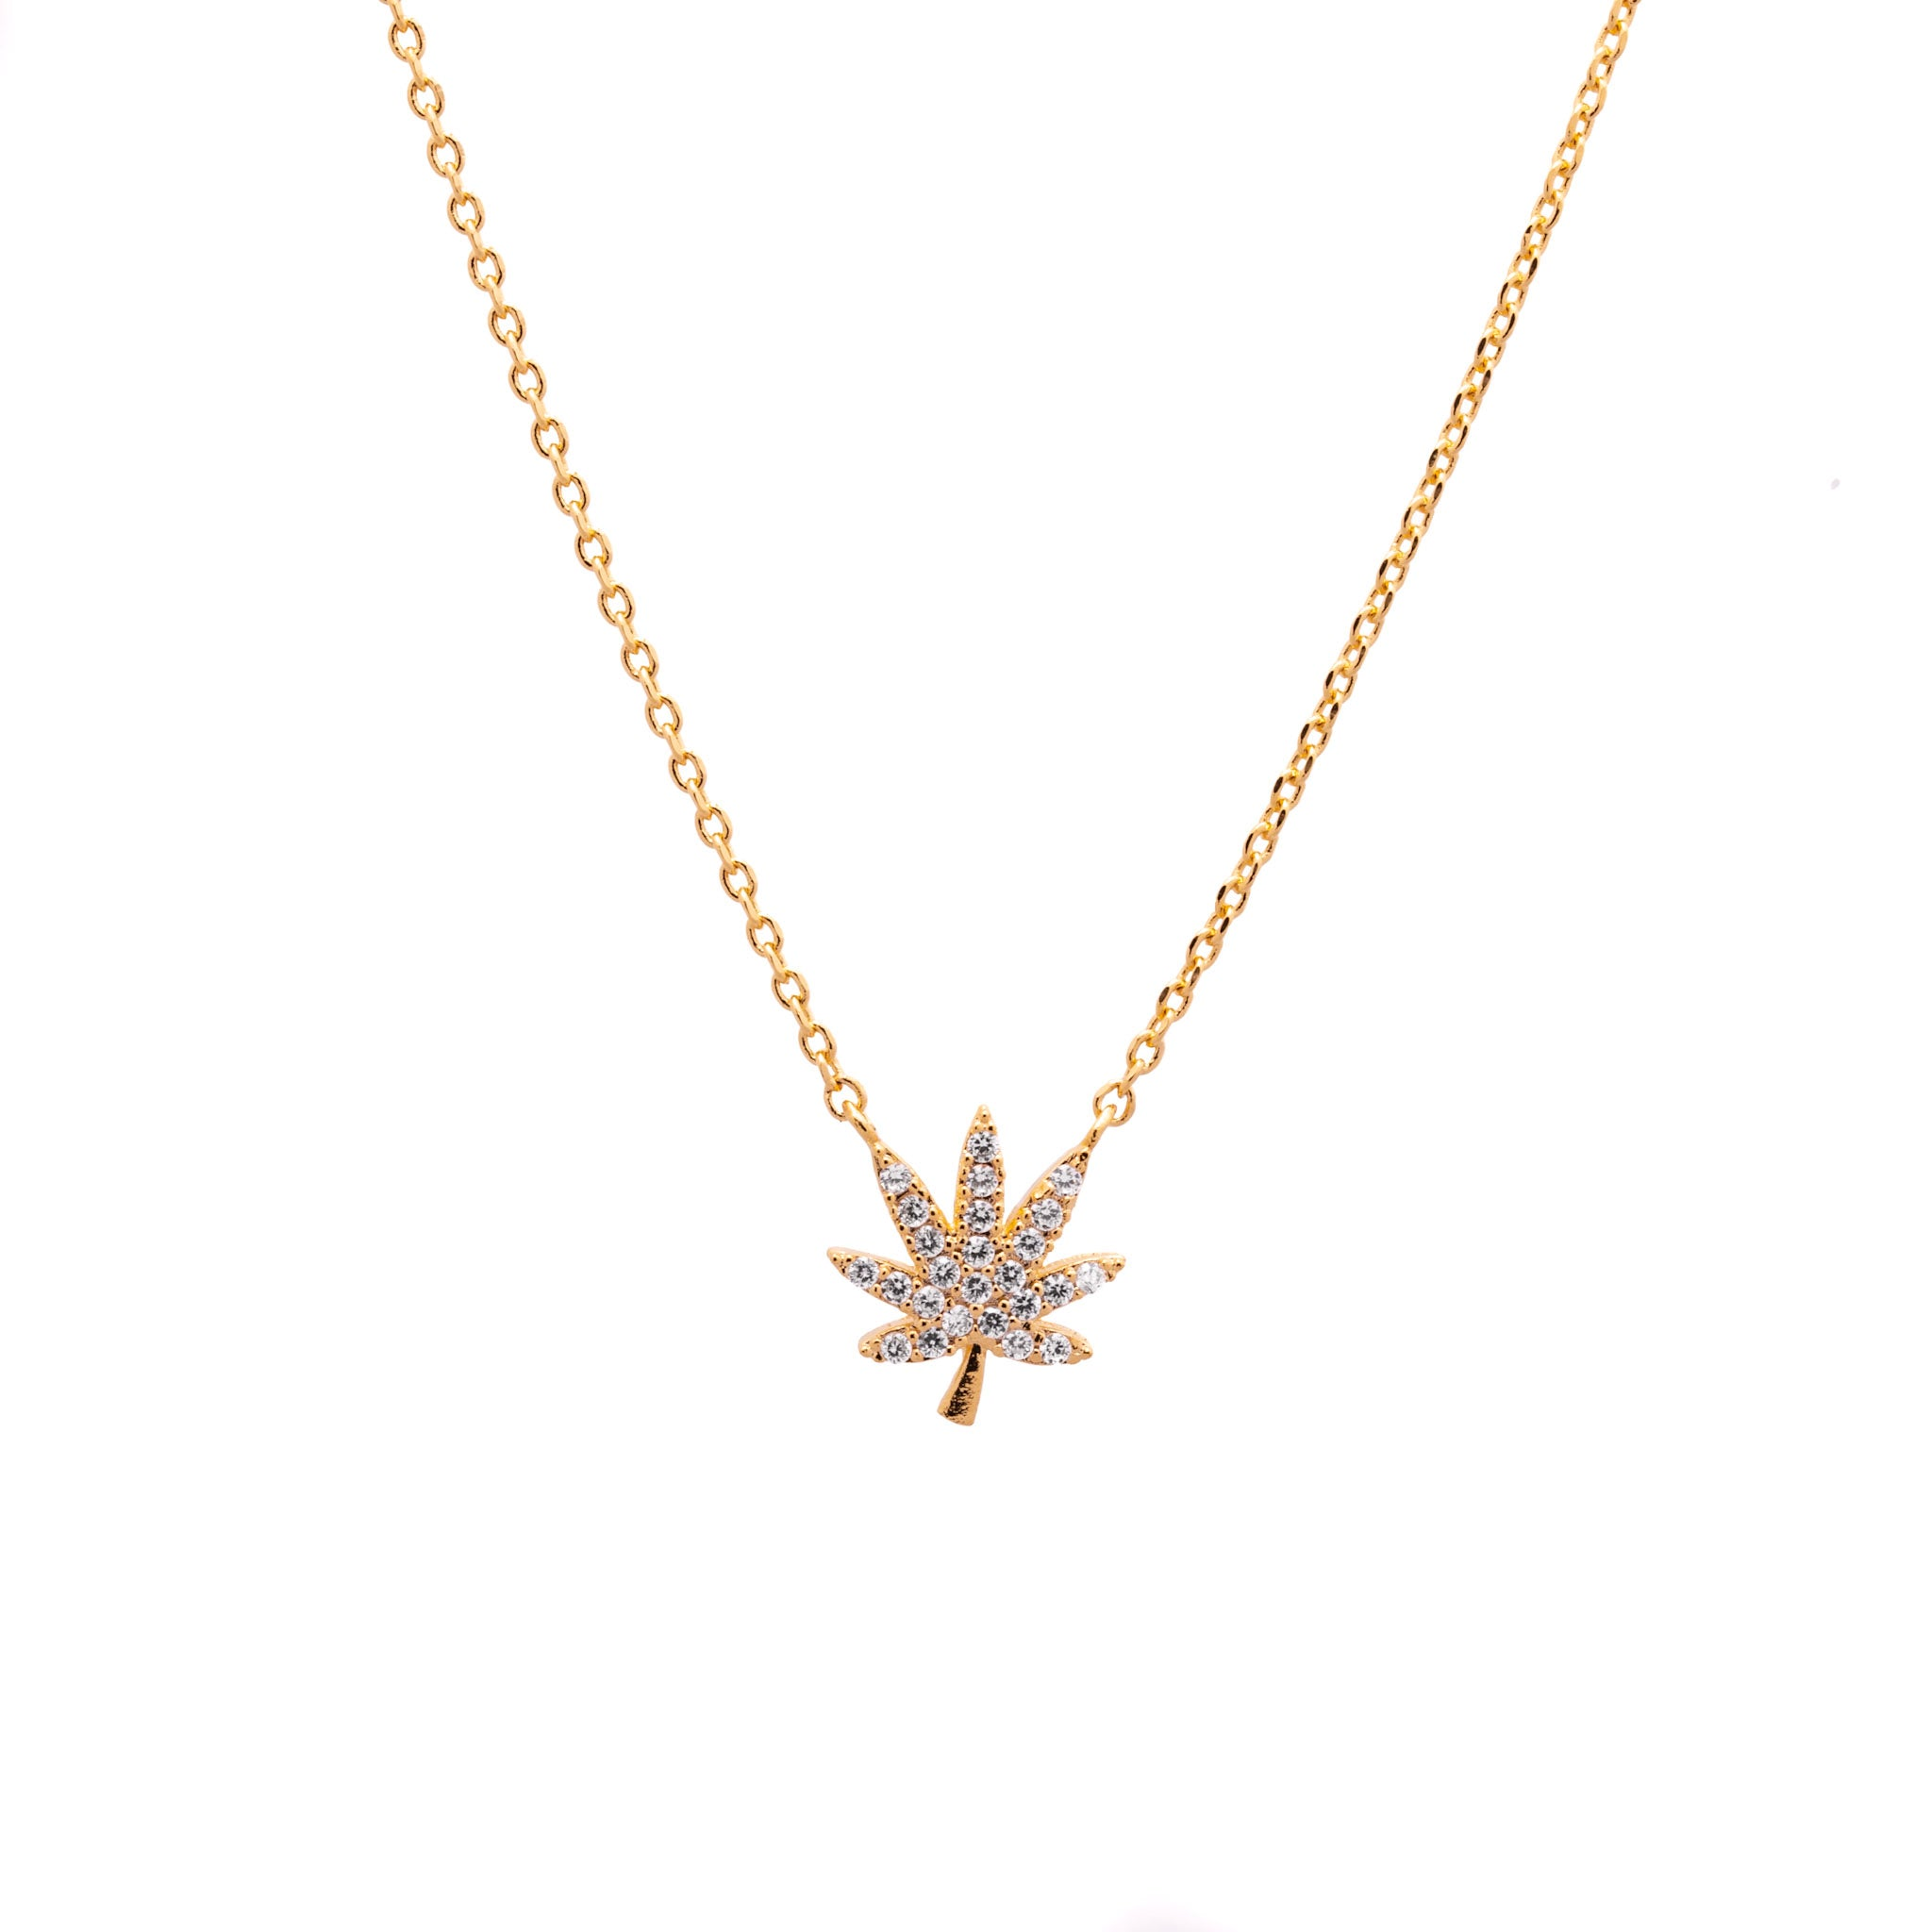 Iced Kush Necklace